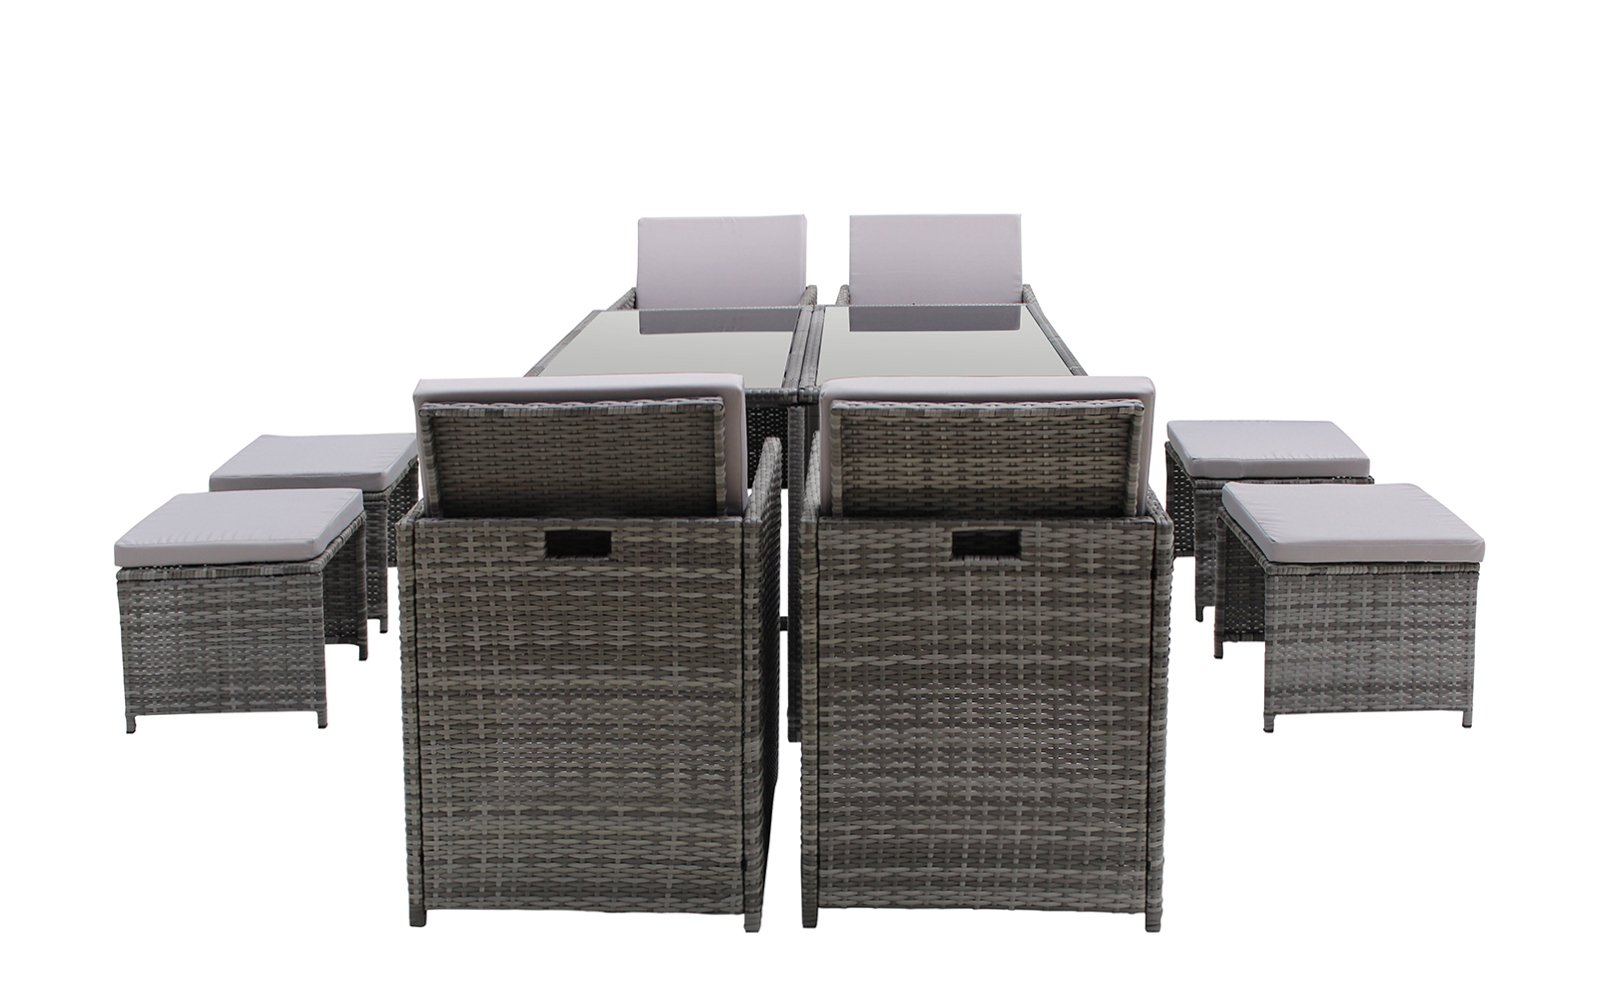 Modern 8 Piece Space Saving Outdoor Furniture Dining Set, Patio Rattan Table and Chairs Set (Grey/Grey) by Sofamania (Image #2)